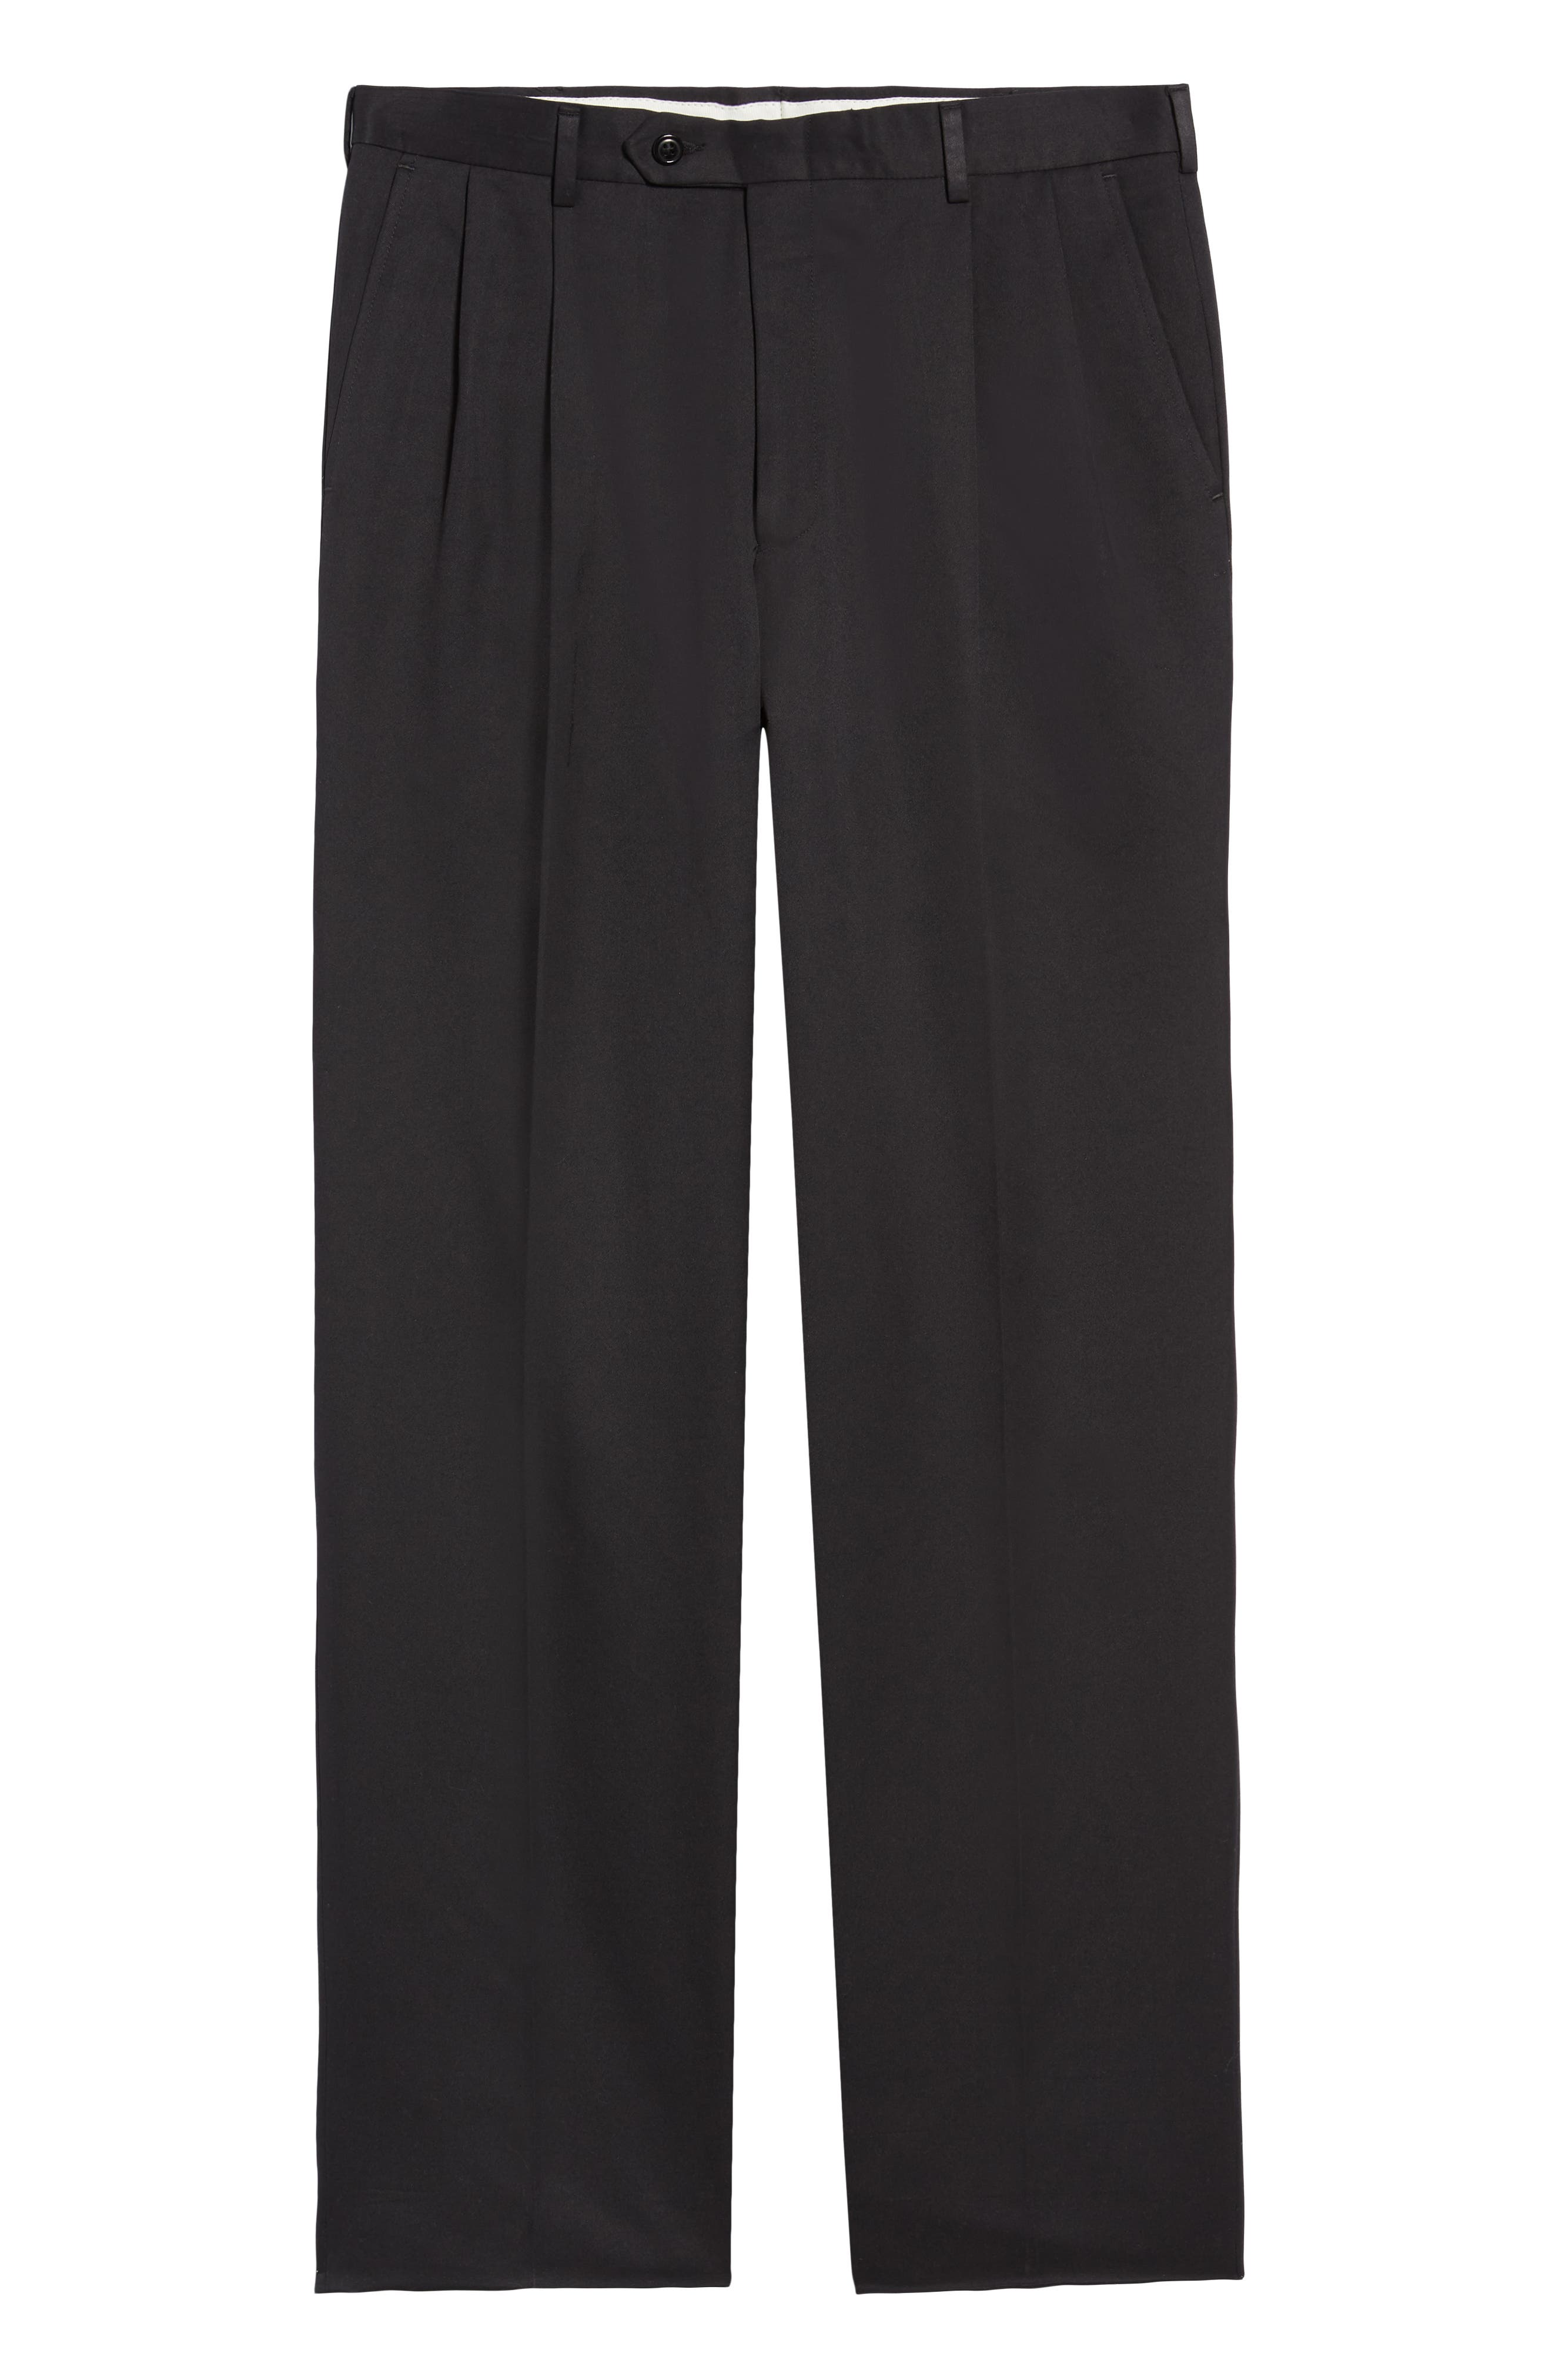 Classic Fit Pleated Microfiber Performance Trousers,                             Alternate thumbnail 6, color,                             BLACK